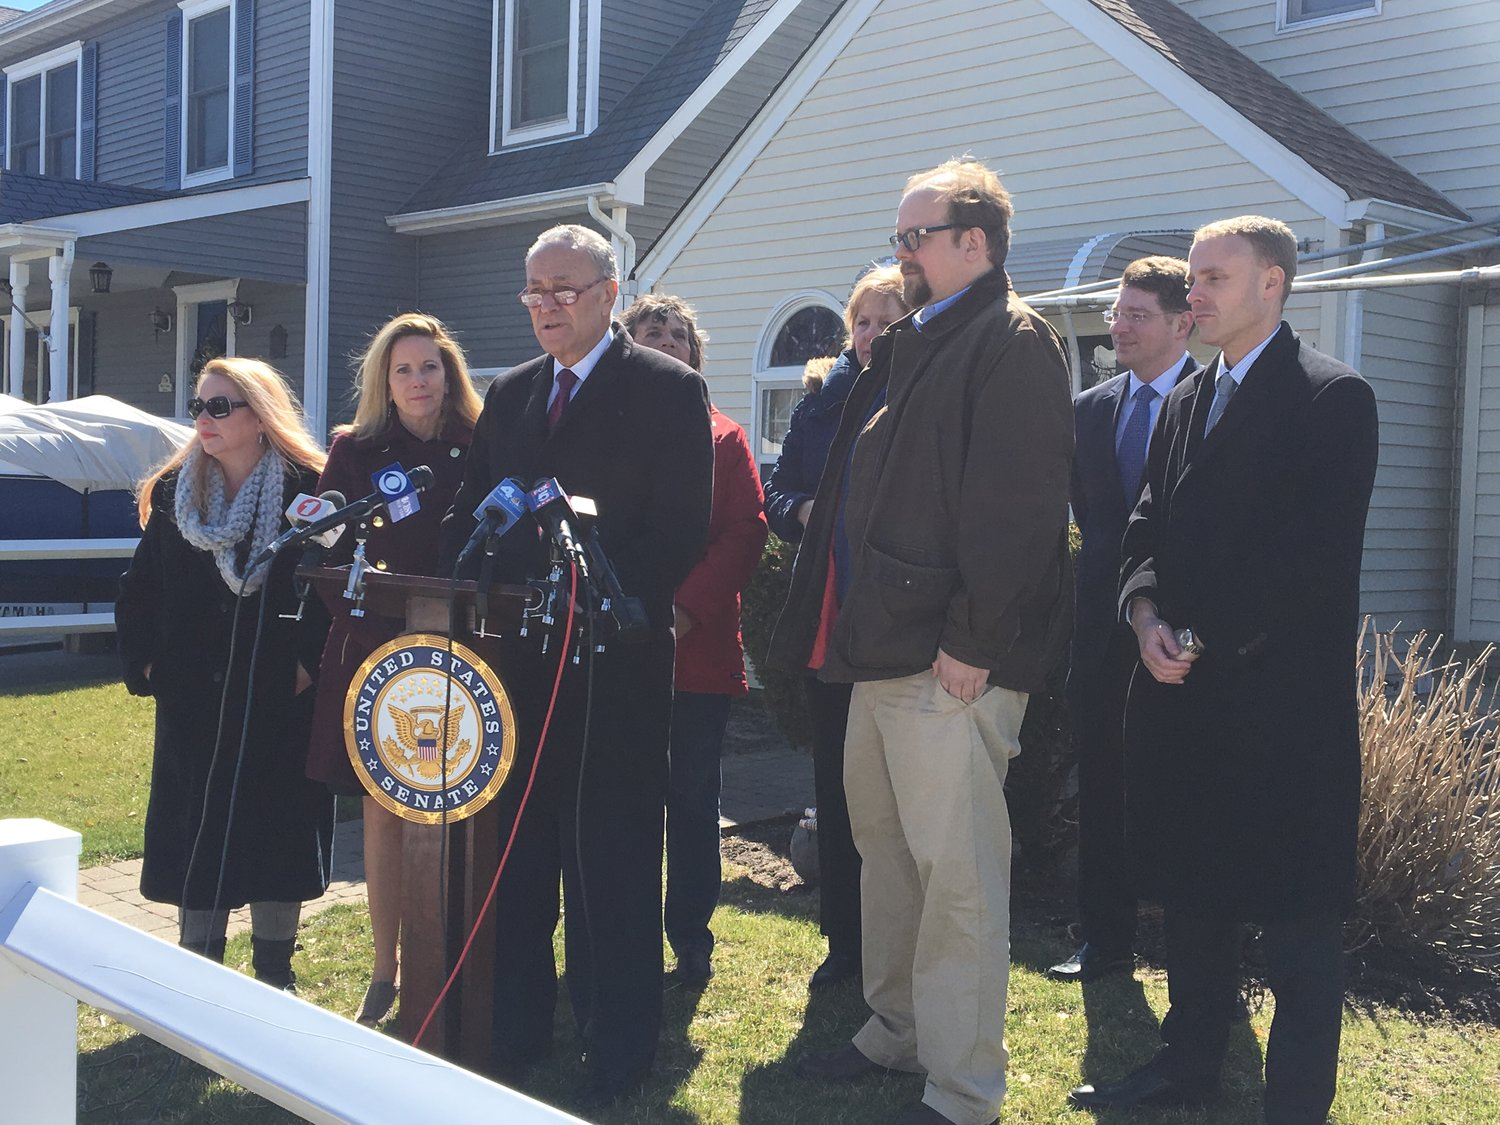 U.S. Sen. Charles Schumer was joined by residents and other elected officials in Long Beach on Monday to call on the Federal Emergency Management Agency to reconsider proposed changes to the National Flood Insurance Program.